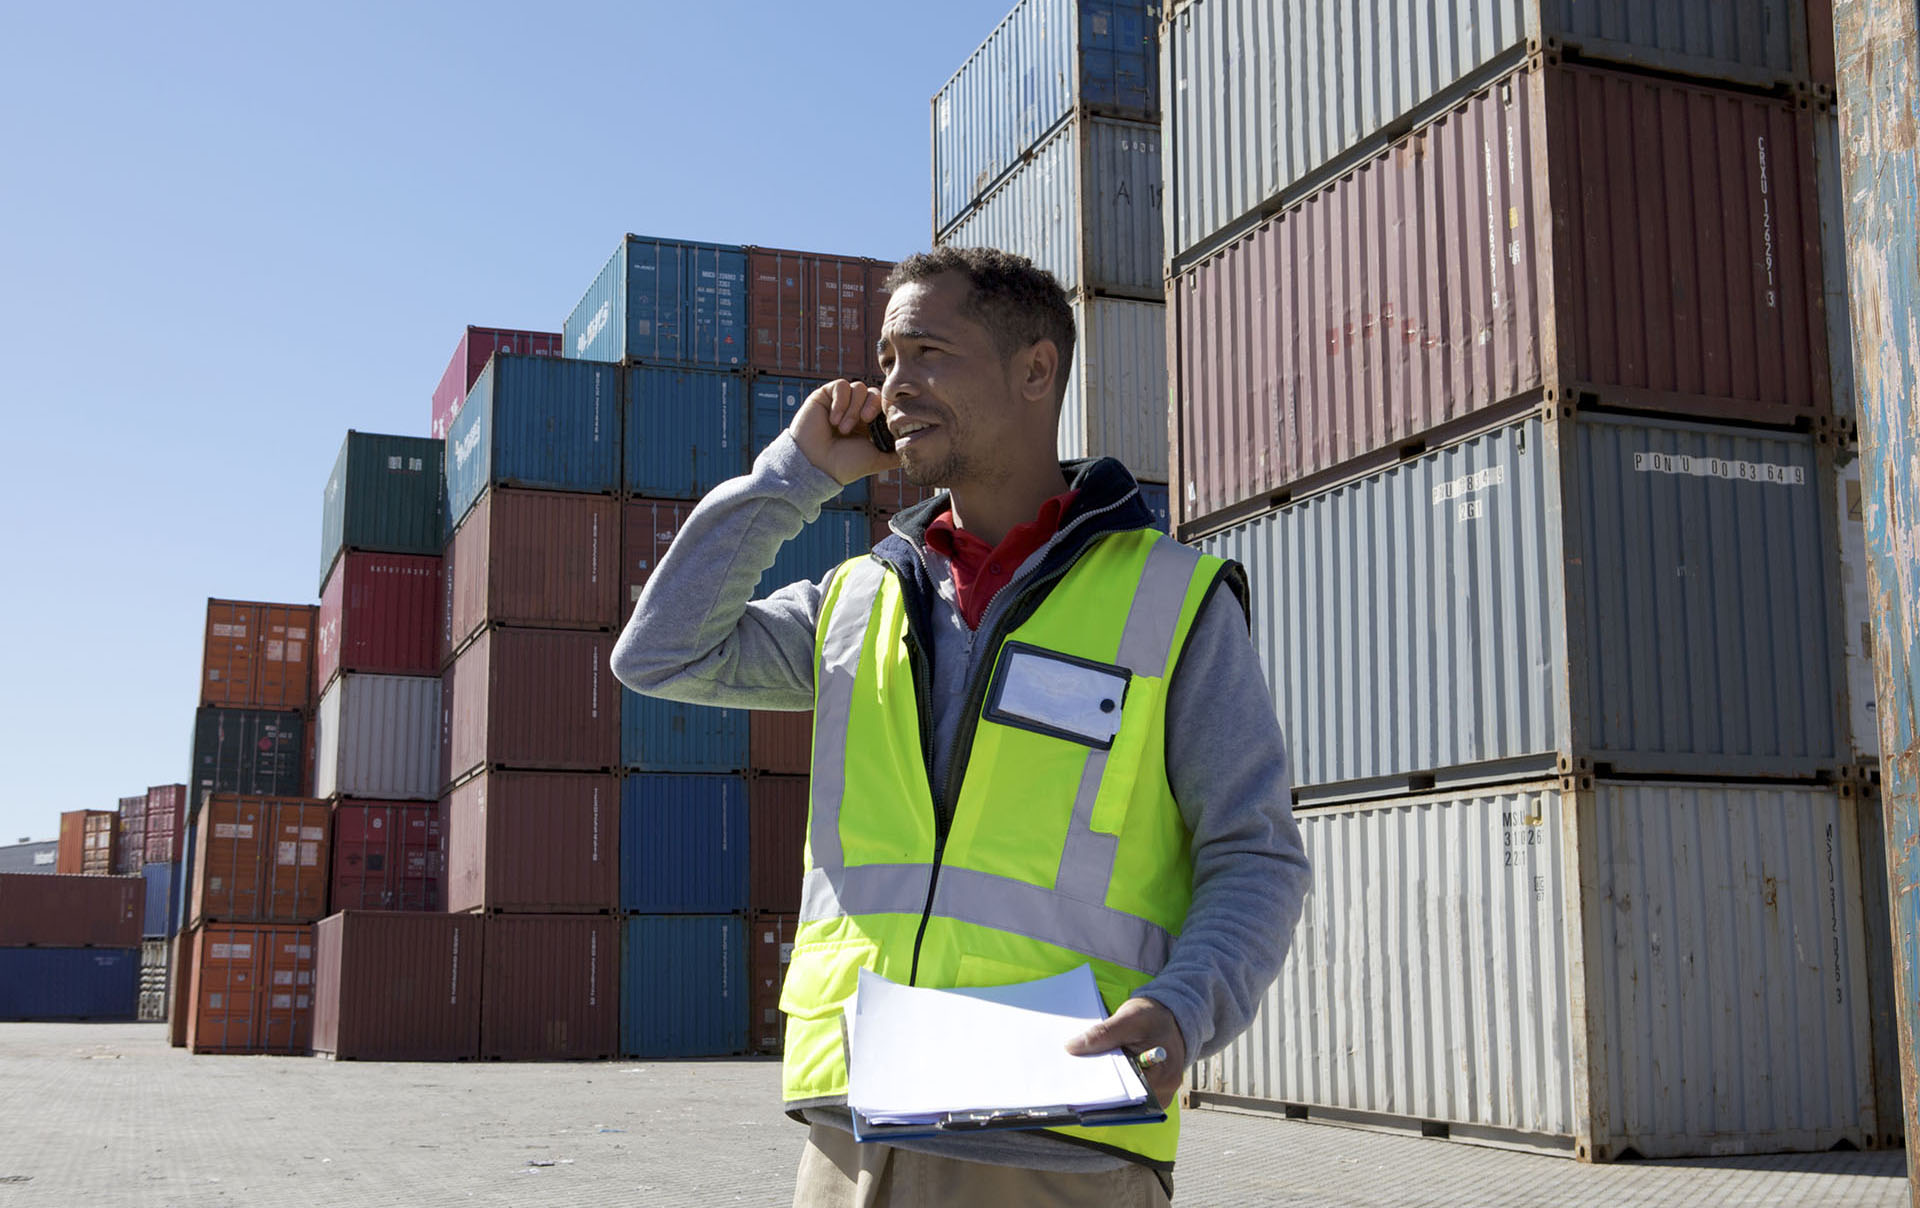 Man in front of shipping containers